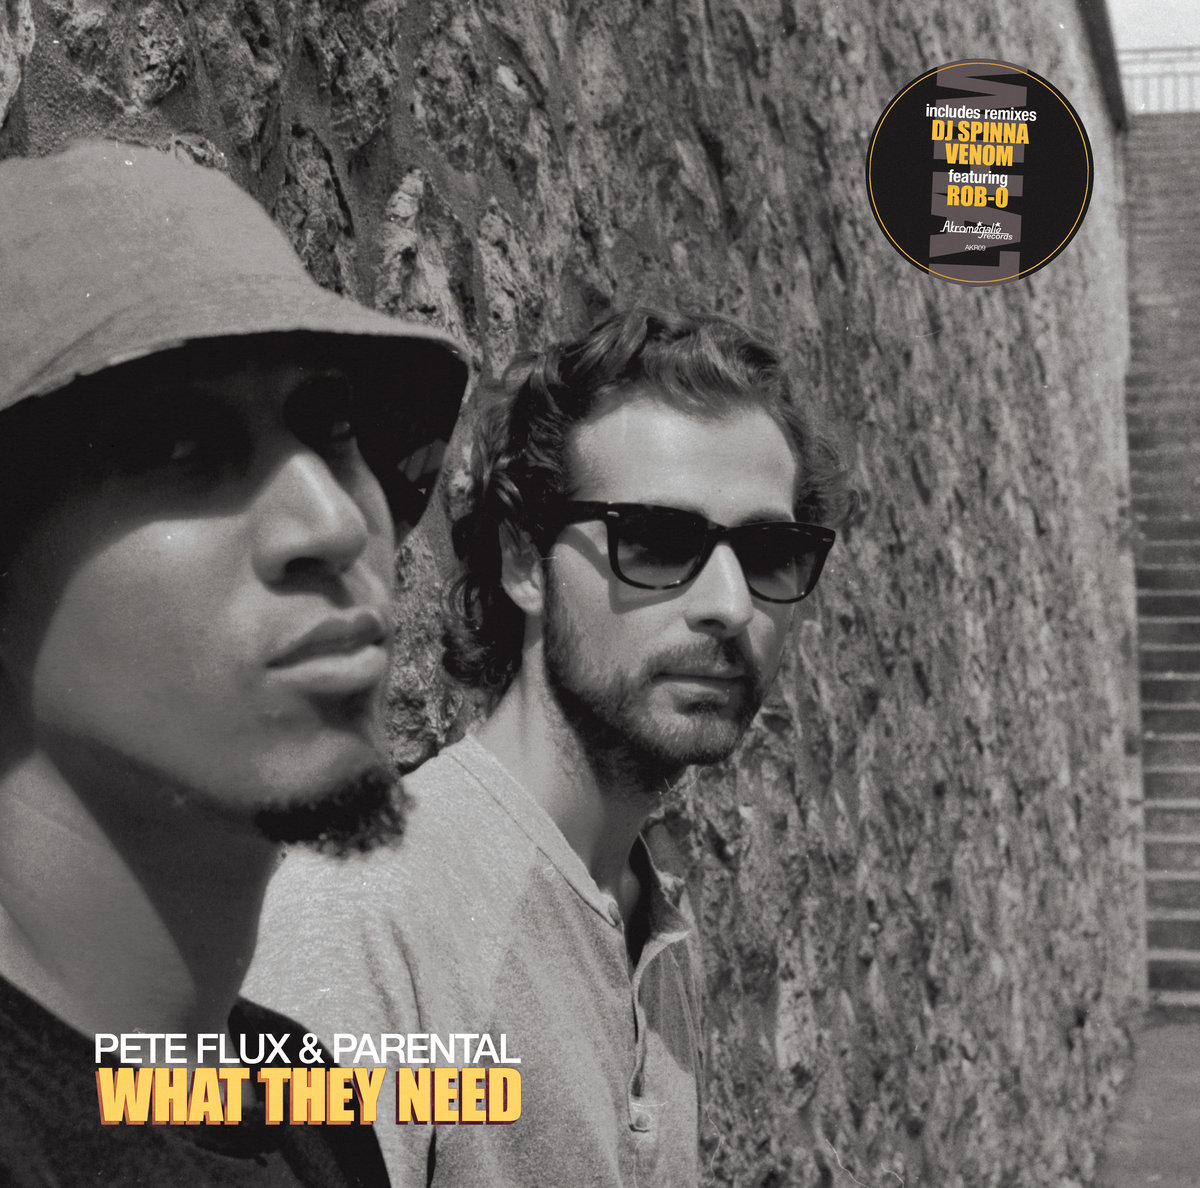 Pete_flux___parental_presentan_what_they_need